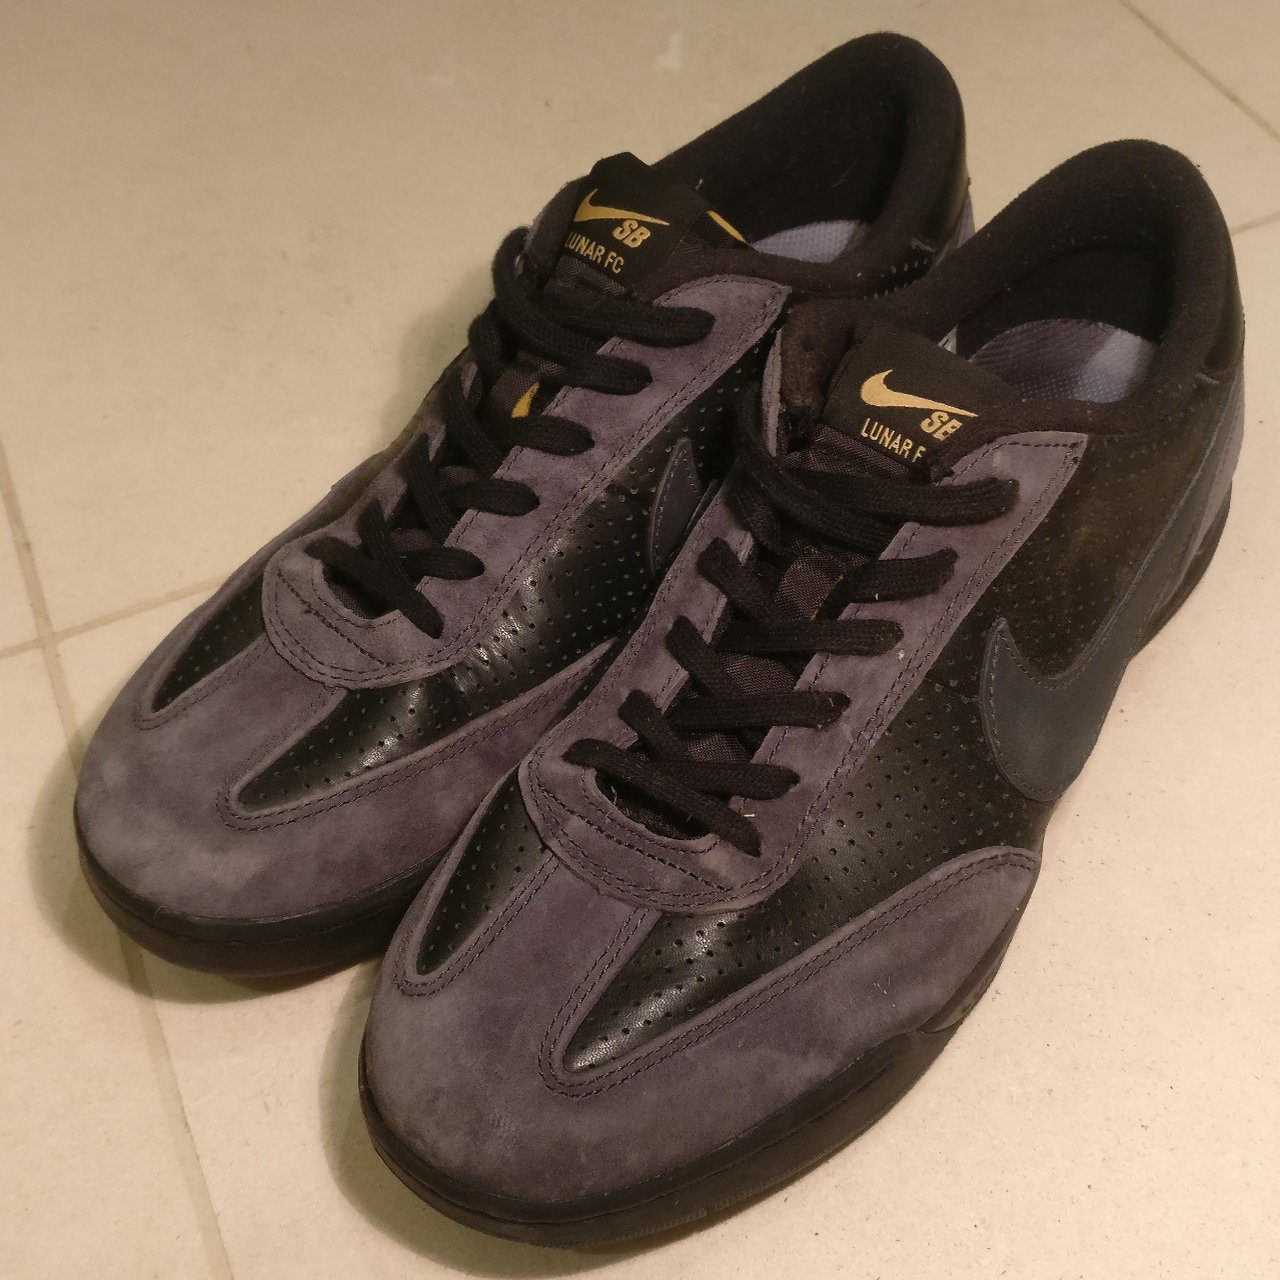 low priced 05821 d8b3c adamerry. 2 months ago. Hoo, Suffolk, United Kingdom. Nike SB X FTC Lunar  FC Shoes - Black  Anthracite - Metallic Gold ...